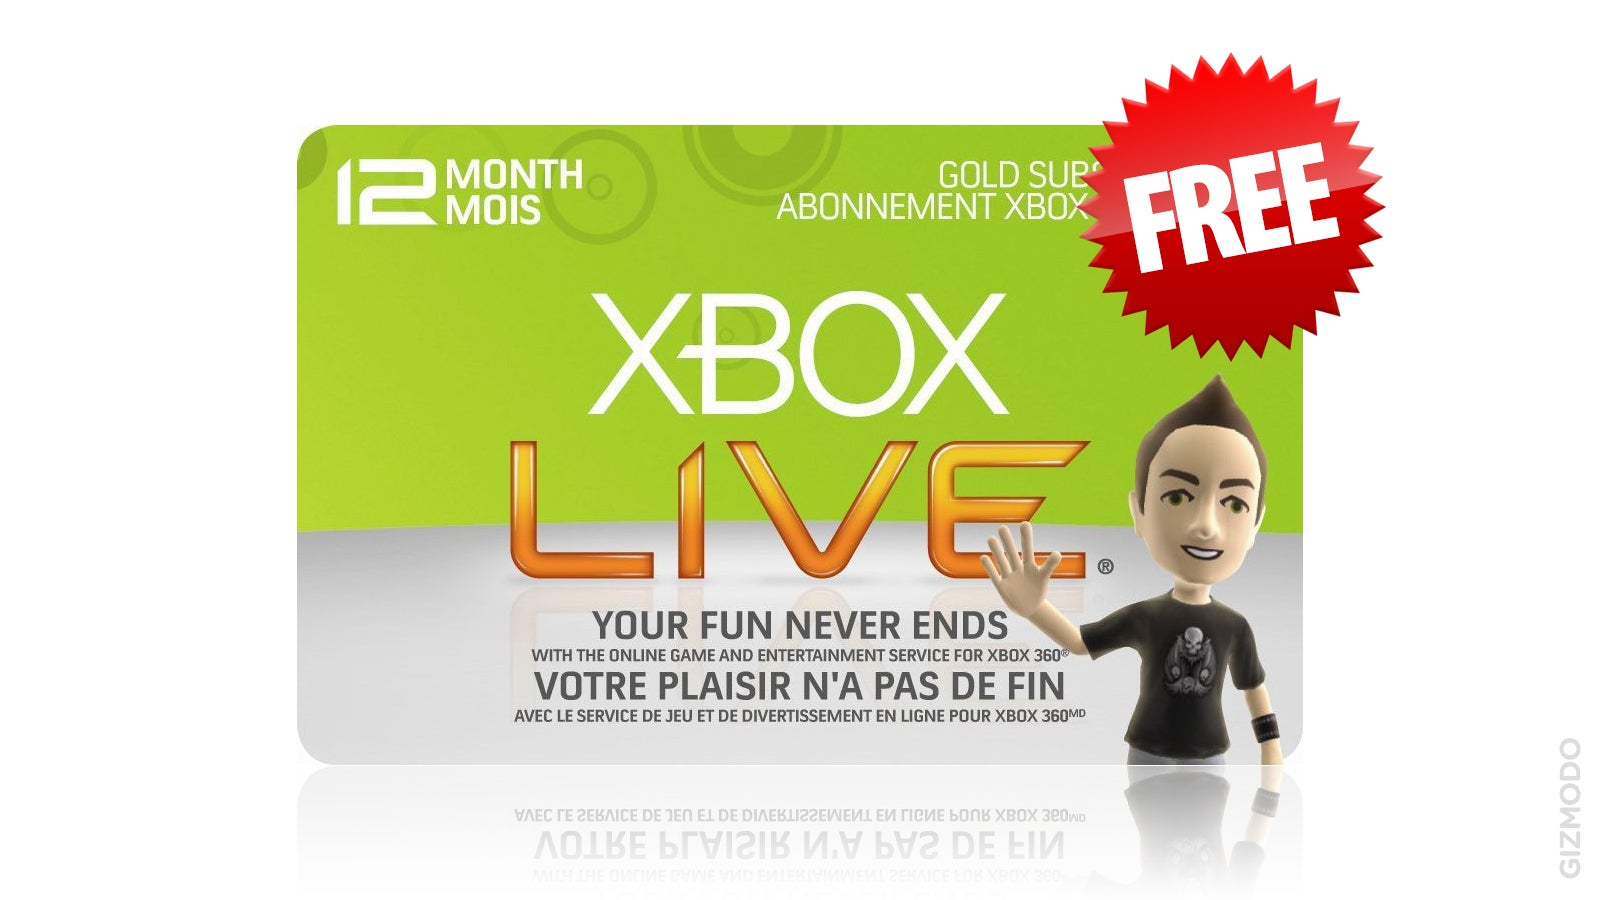 Free Xbox Live Gold Membership No Surveys Or Downloads - are ...